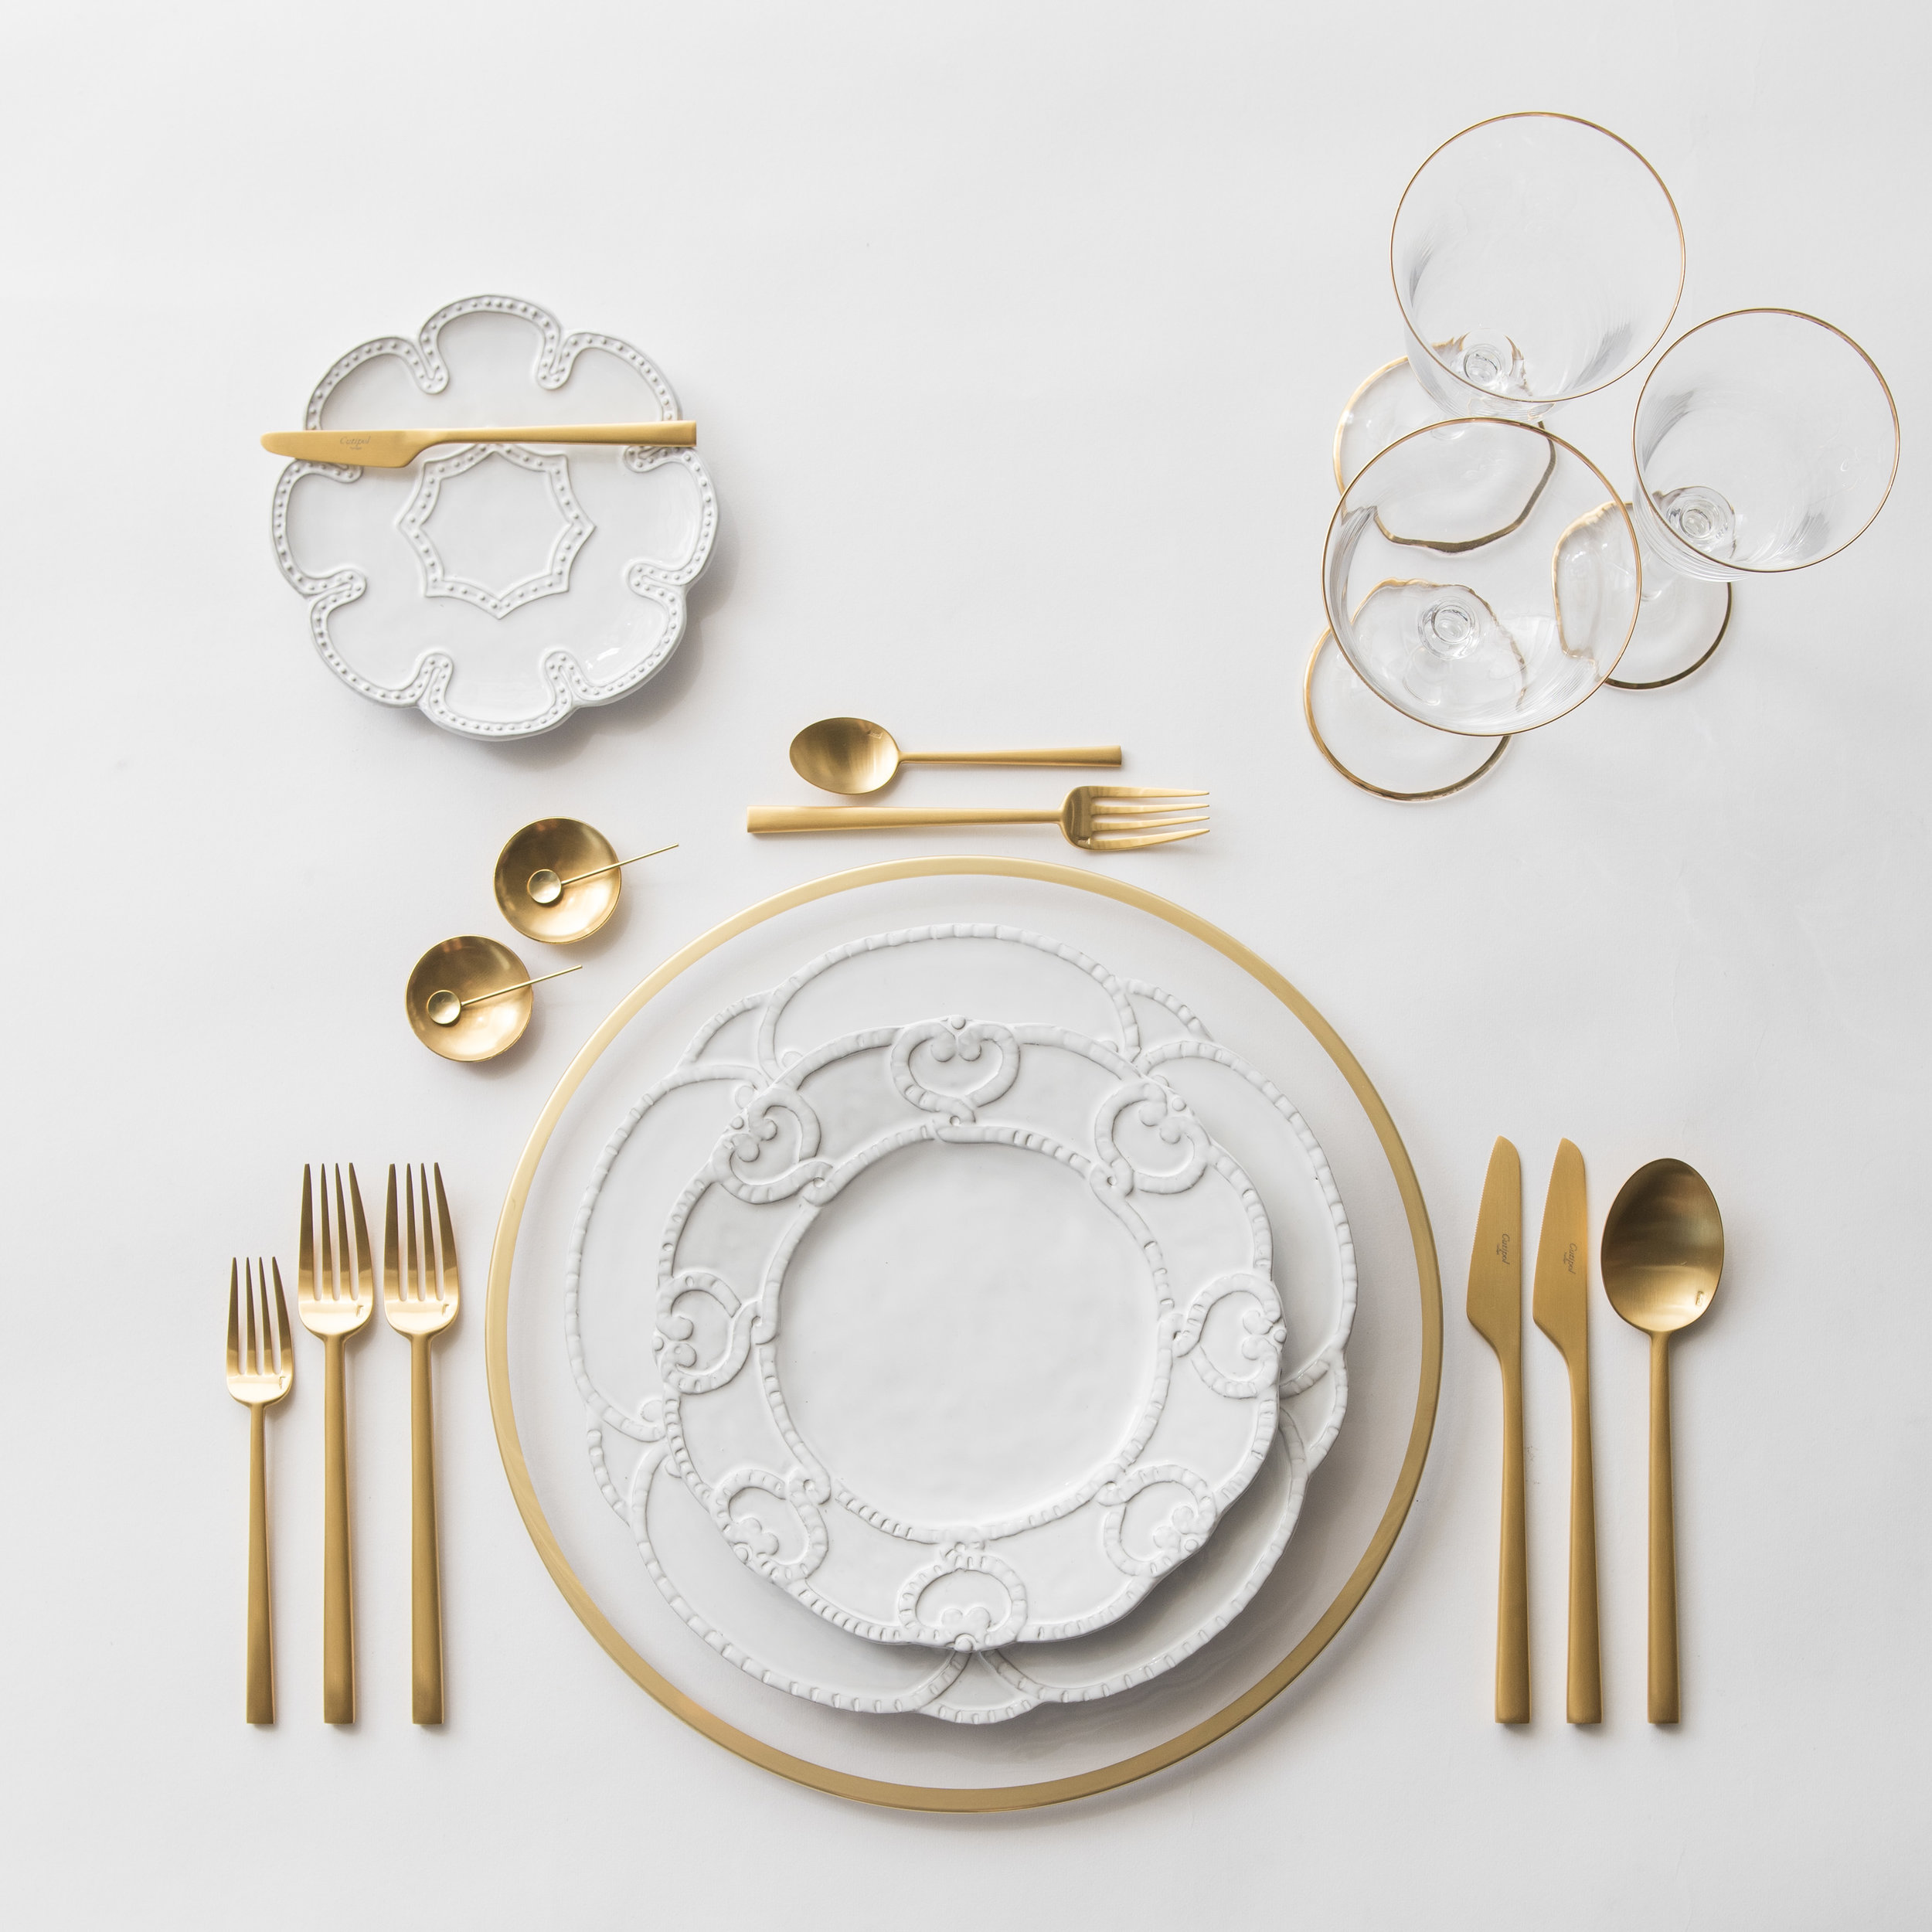 RENT: Halo Glass Chargers in 24k Gold + Signature Collection Dinnerware + Rondo Flatware in Brushed 24k Gold + Chloe 24k Gold Rimmed Stemware + 14k Gold Salt Cellars + Tiny Gold Spoons  SHOP: Halo Glass Chargers in 24k Gold + Rondo Flatware in Brushed 24k Gold + Chloe 24k Gold Rimmed Stemware + 14k Gold Salt Cellars + Tiny Gold Spoons